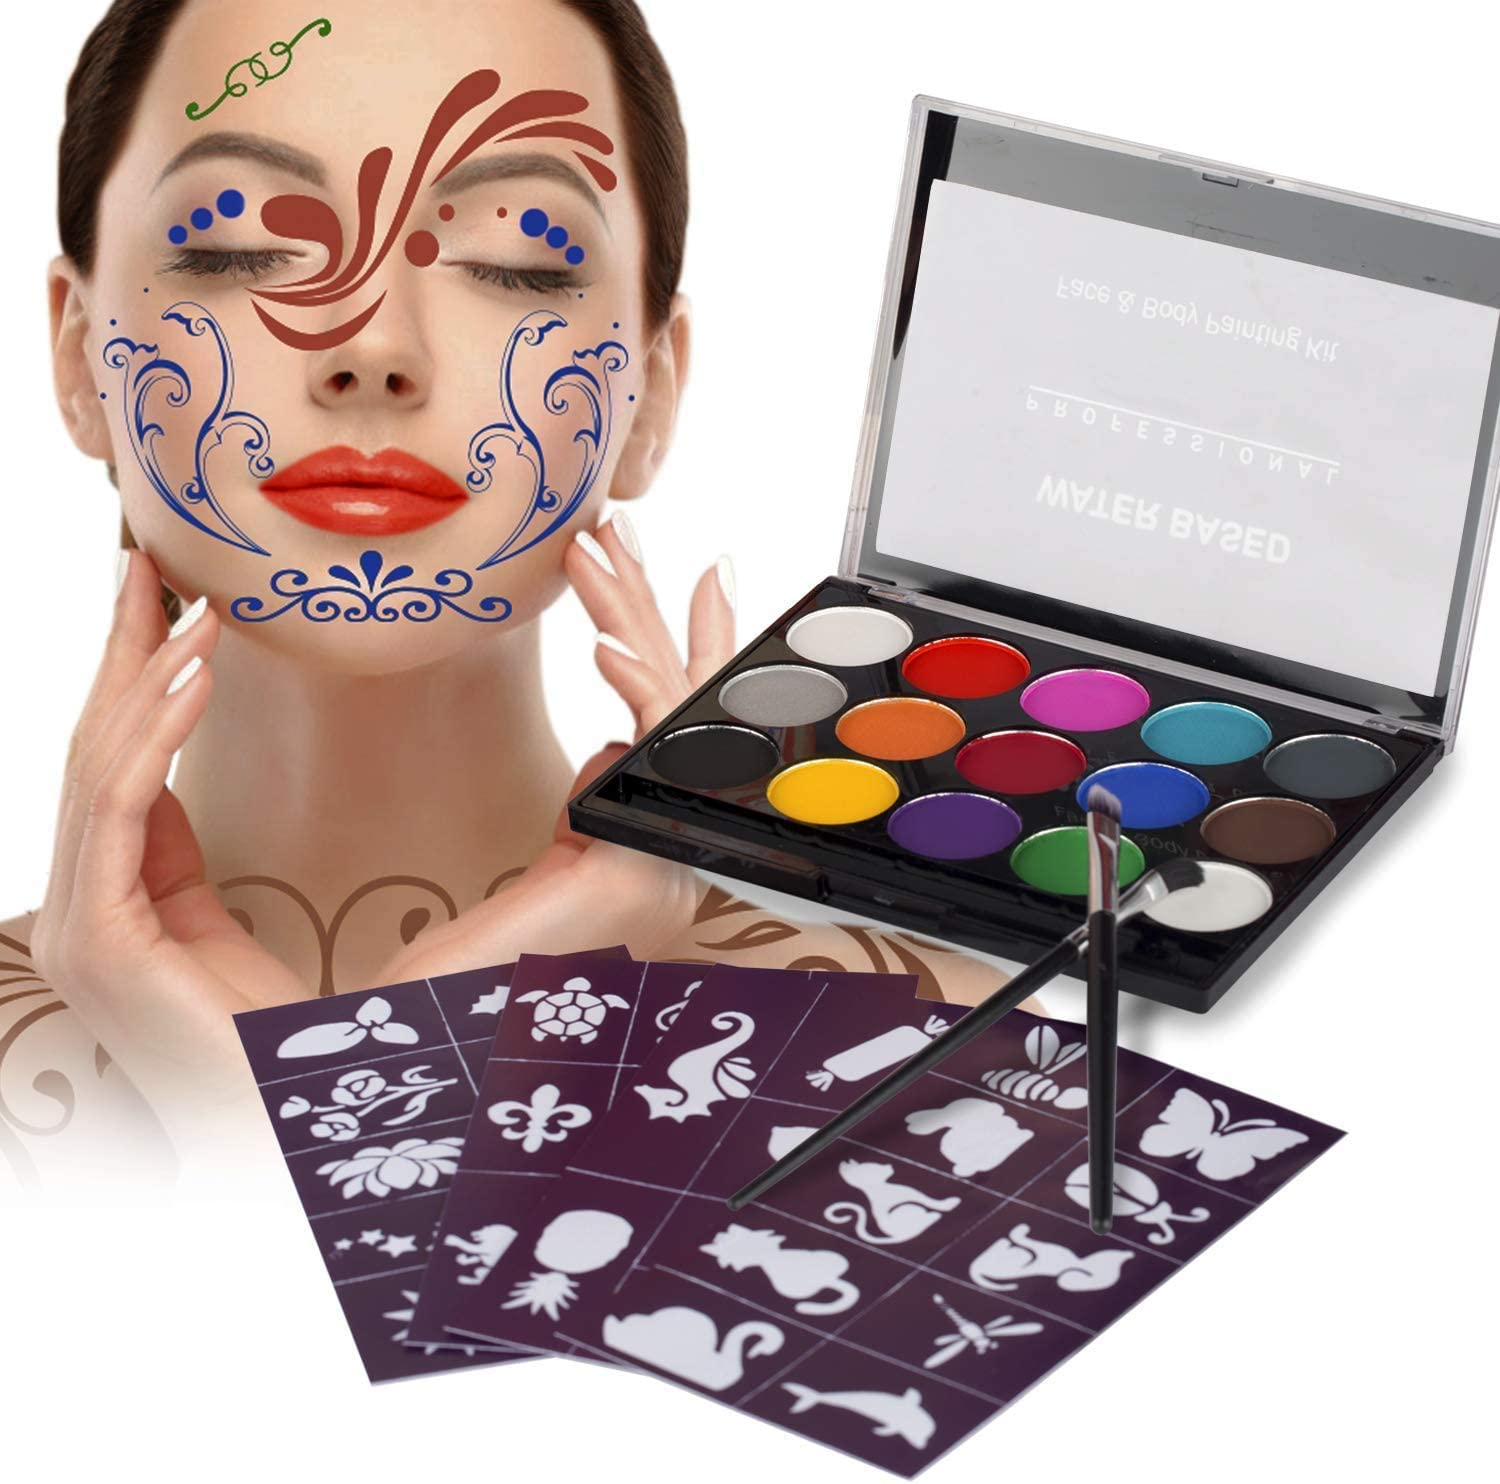 XPASSION Kit de Pintura Facial. Set de Maquillaje, Pinturas Corporales, Pintura Cara Professional Juego con 1 brocha 15 Colores para niños Fiestas Body Painting de Halloween Make Up